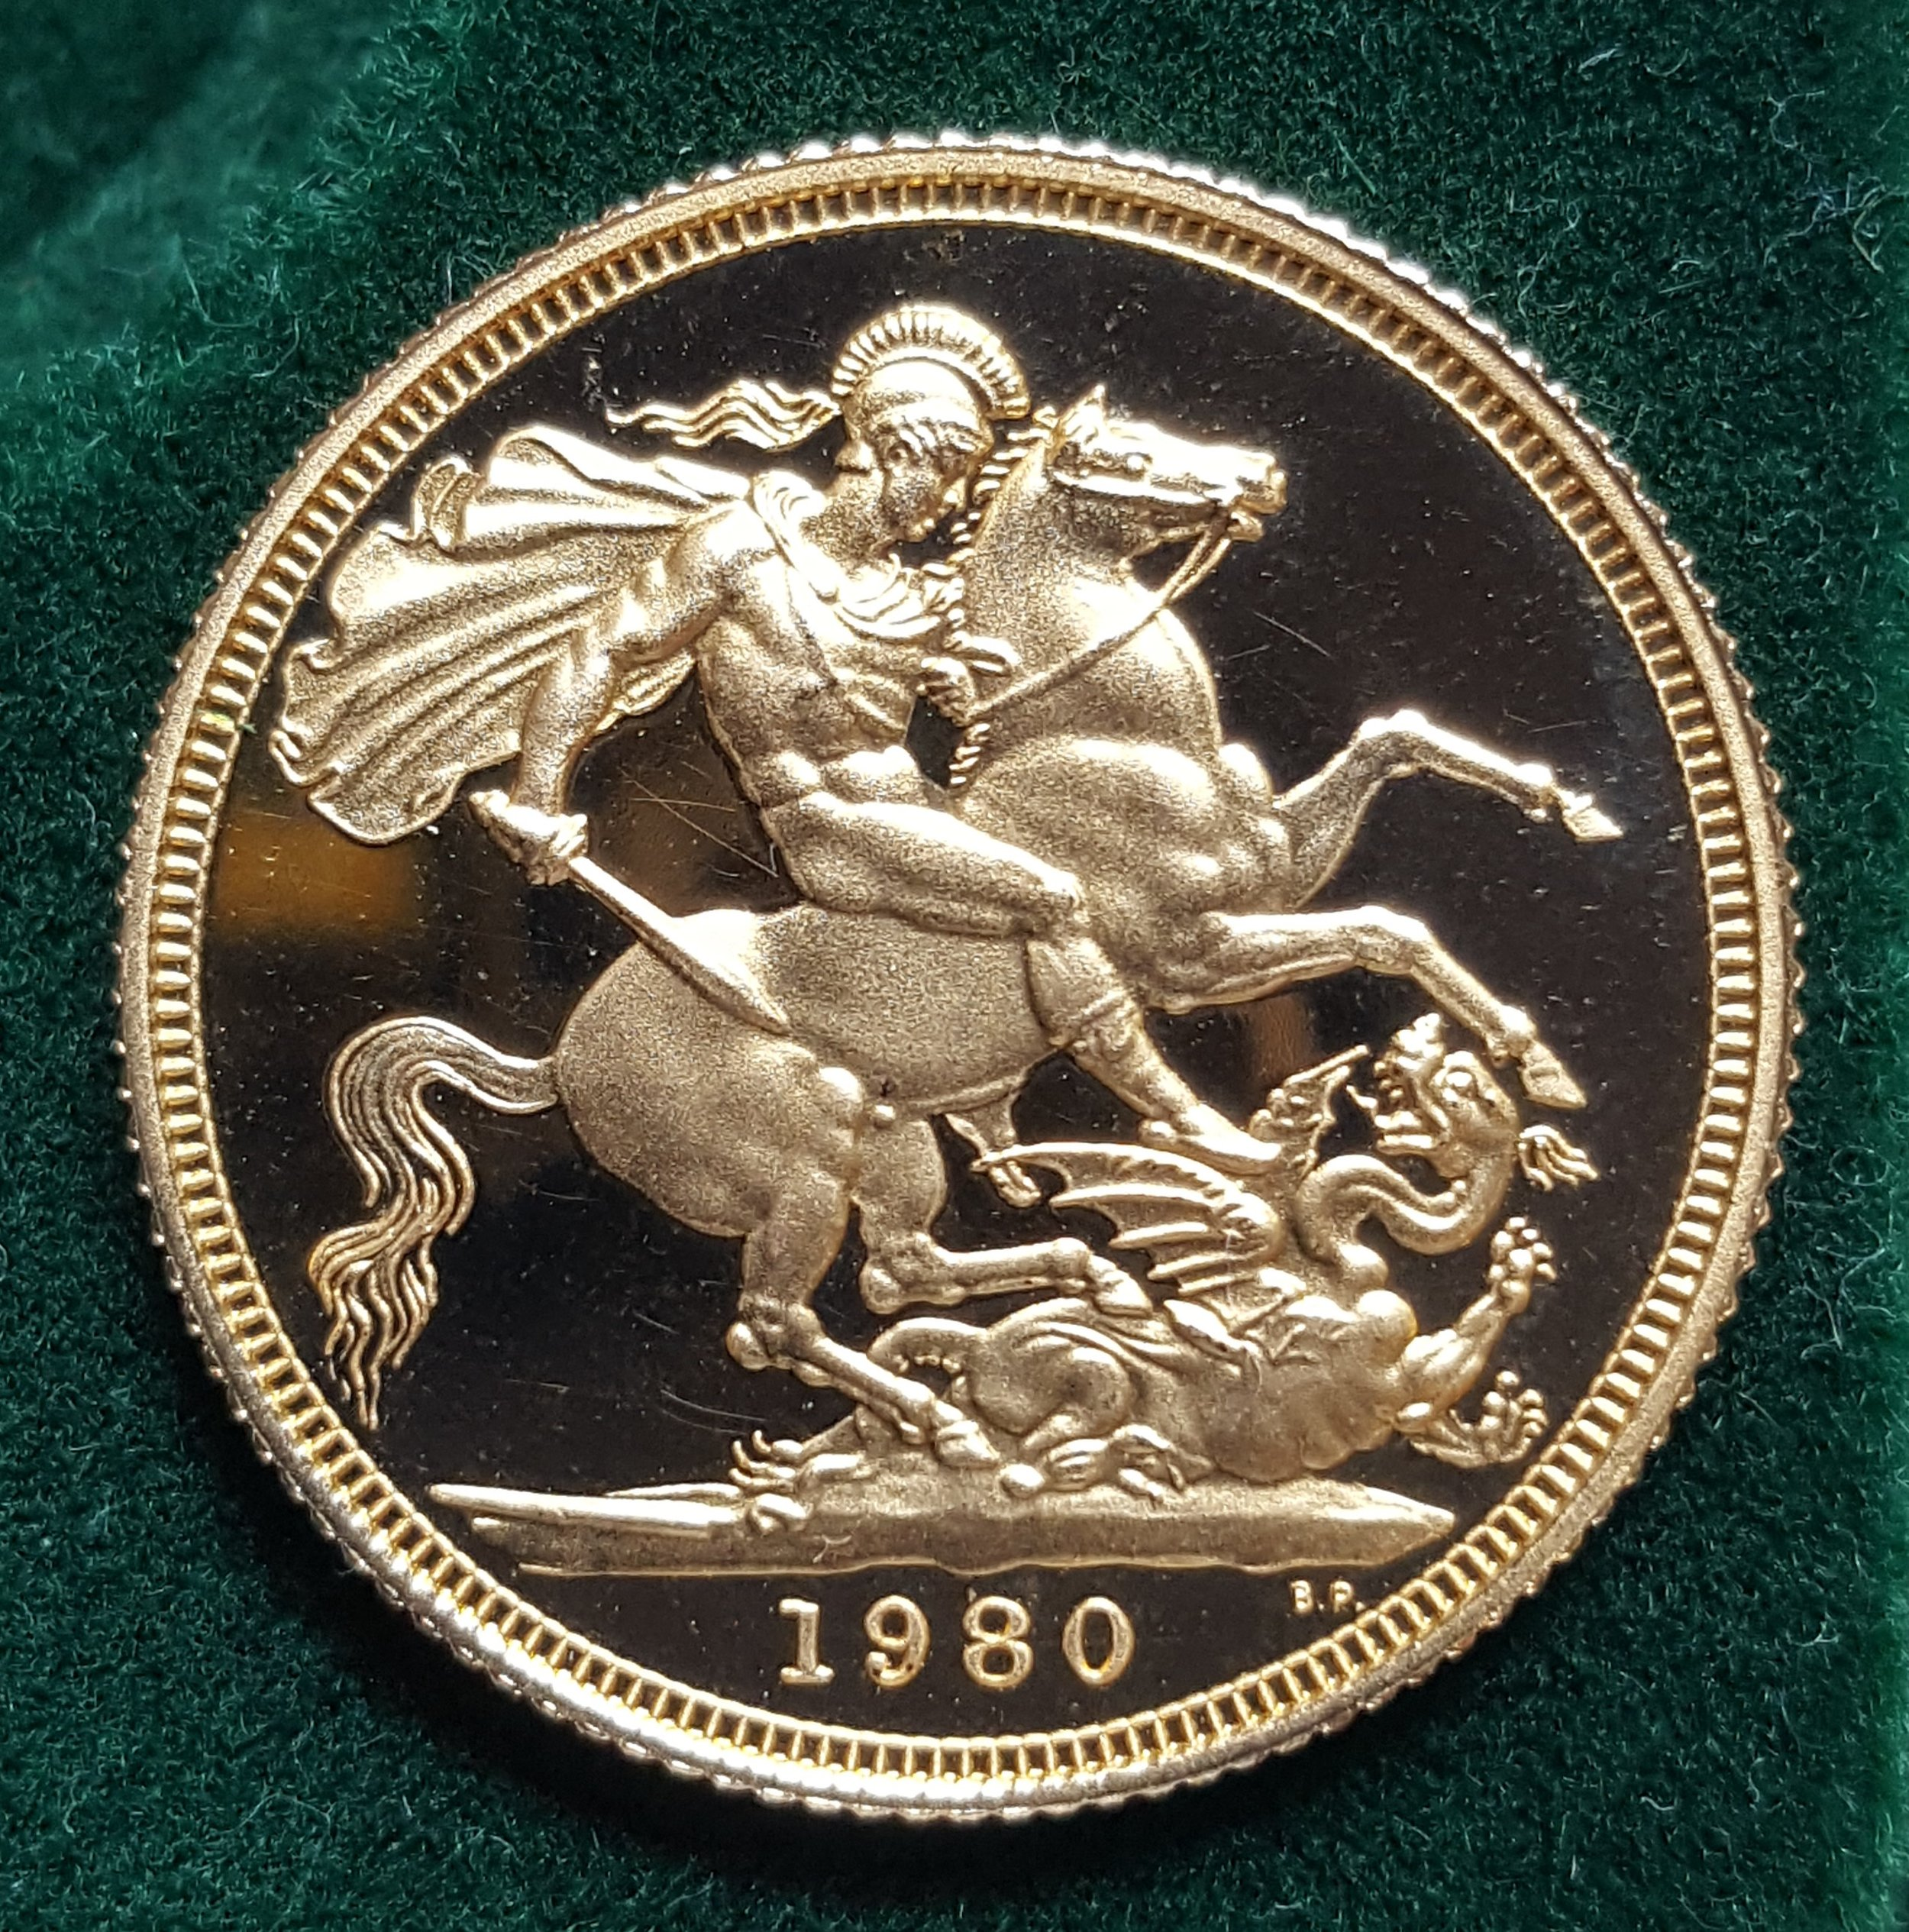 Queen Elizabeth II 1980 Proof Full Gold Sovereign.